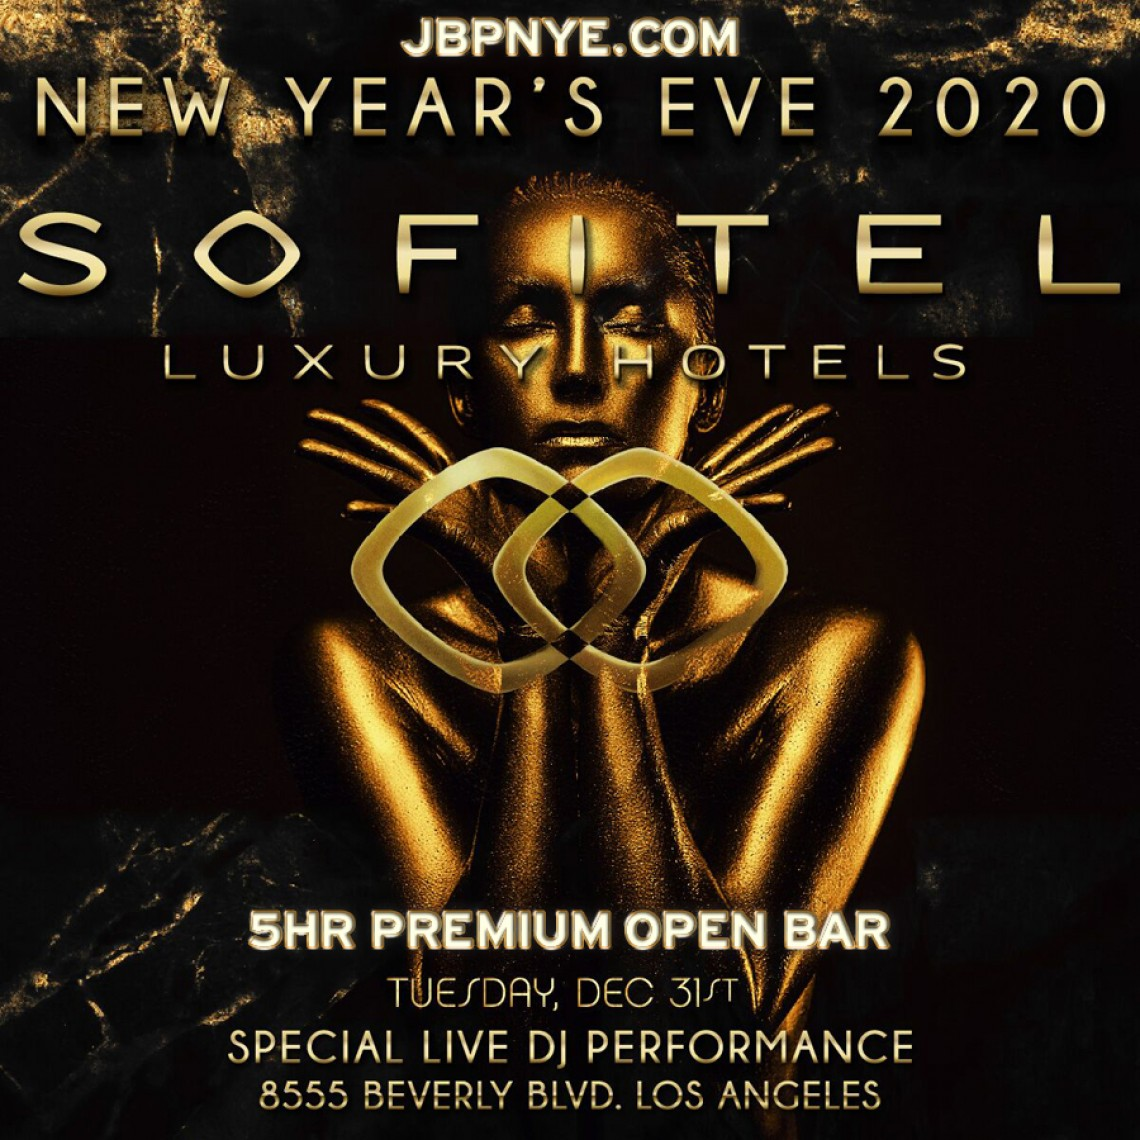 NYE | Sofitel Los Angeles 2020 New Year's Eve